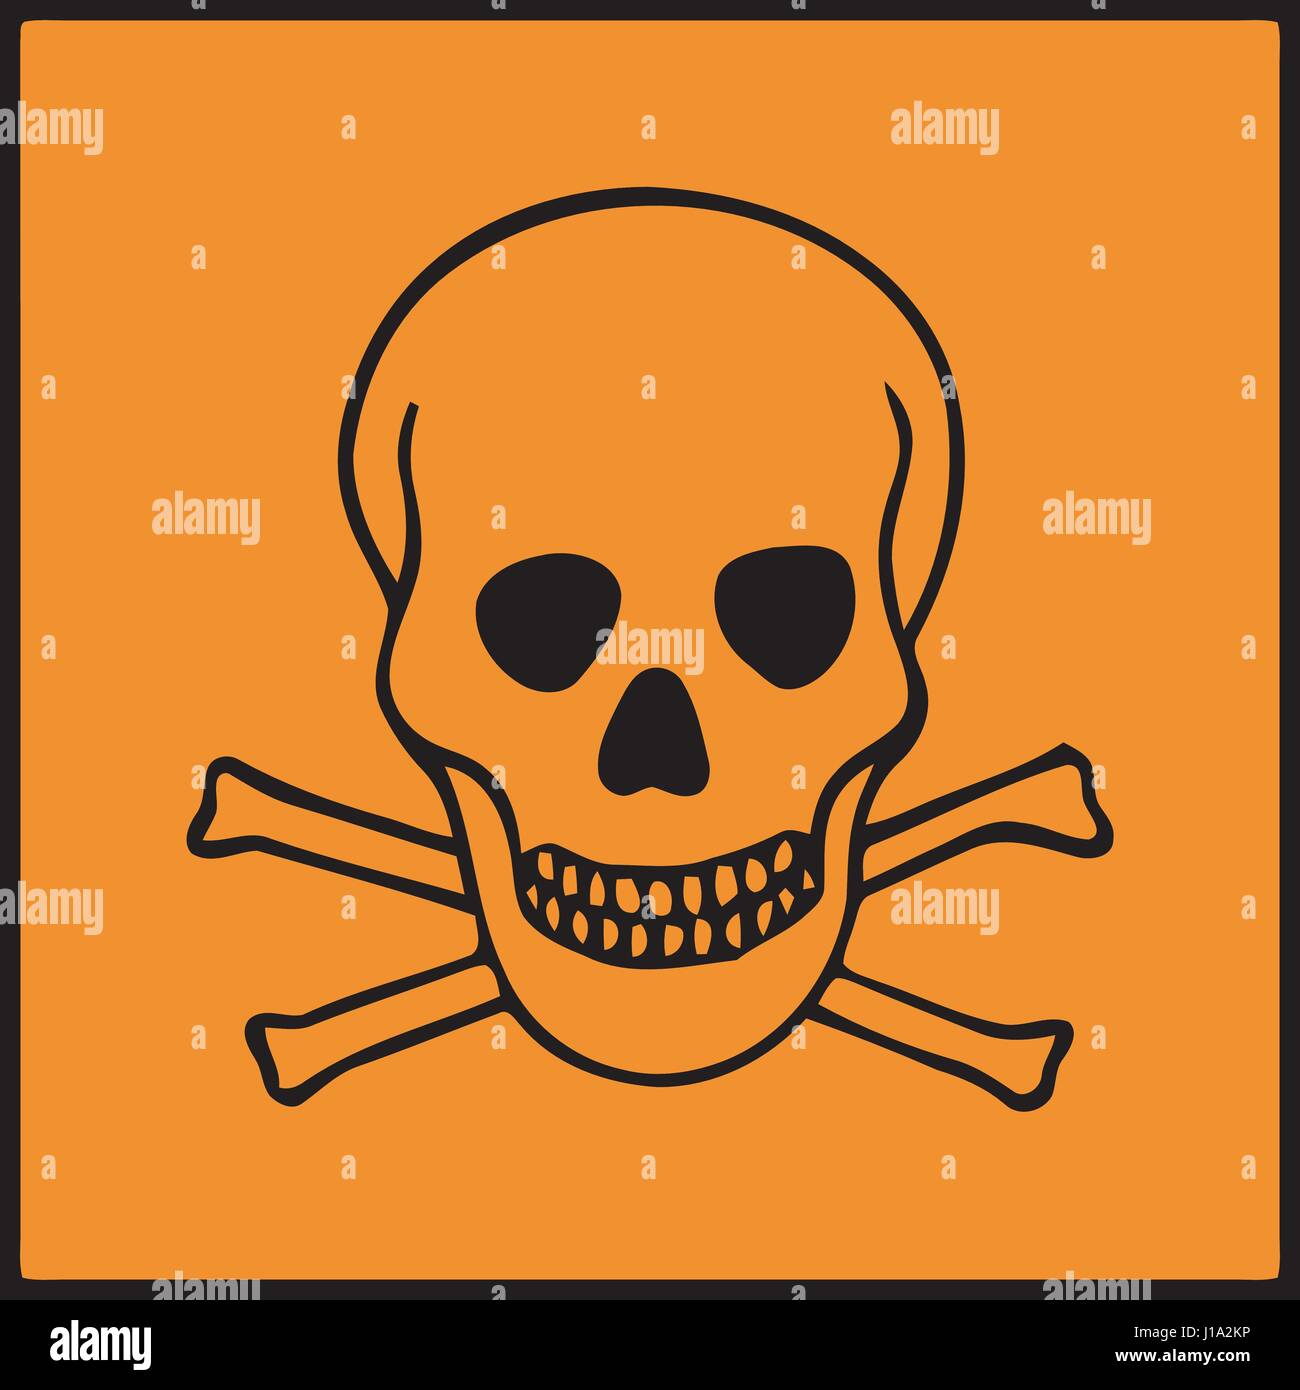 Vector image of symbol of hazard presents on dangerous products - Stock Image